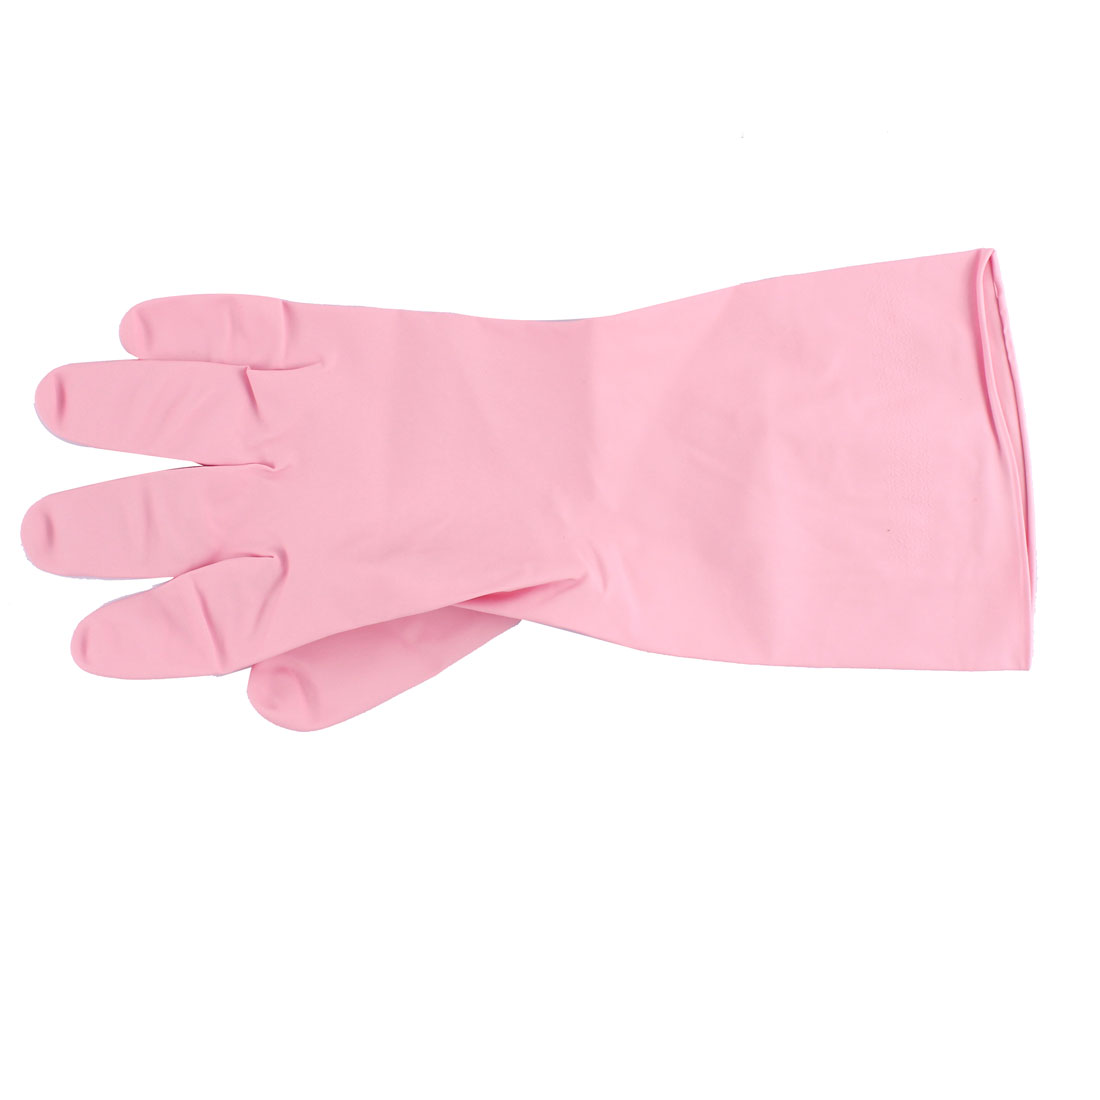 Unique Bargains Pink Rubber Kitchen Dish Washing Cleaning Protect Hand Gloves Pair - image 1 of 3